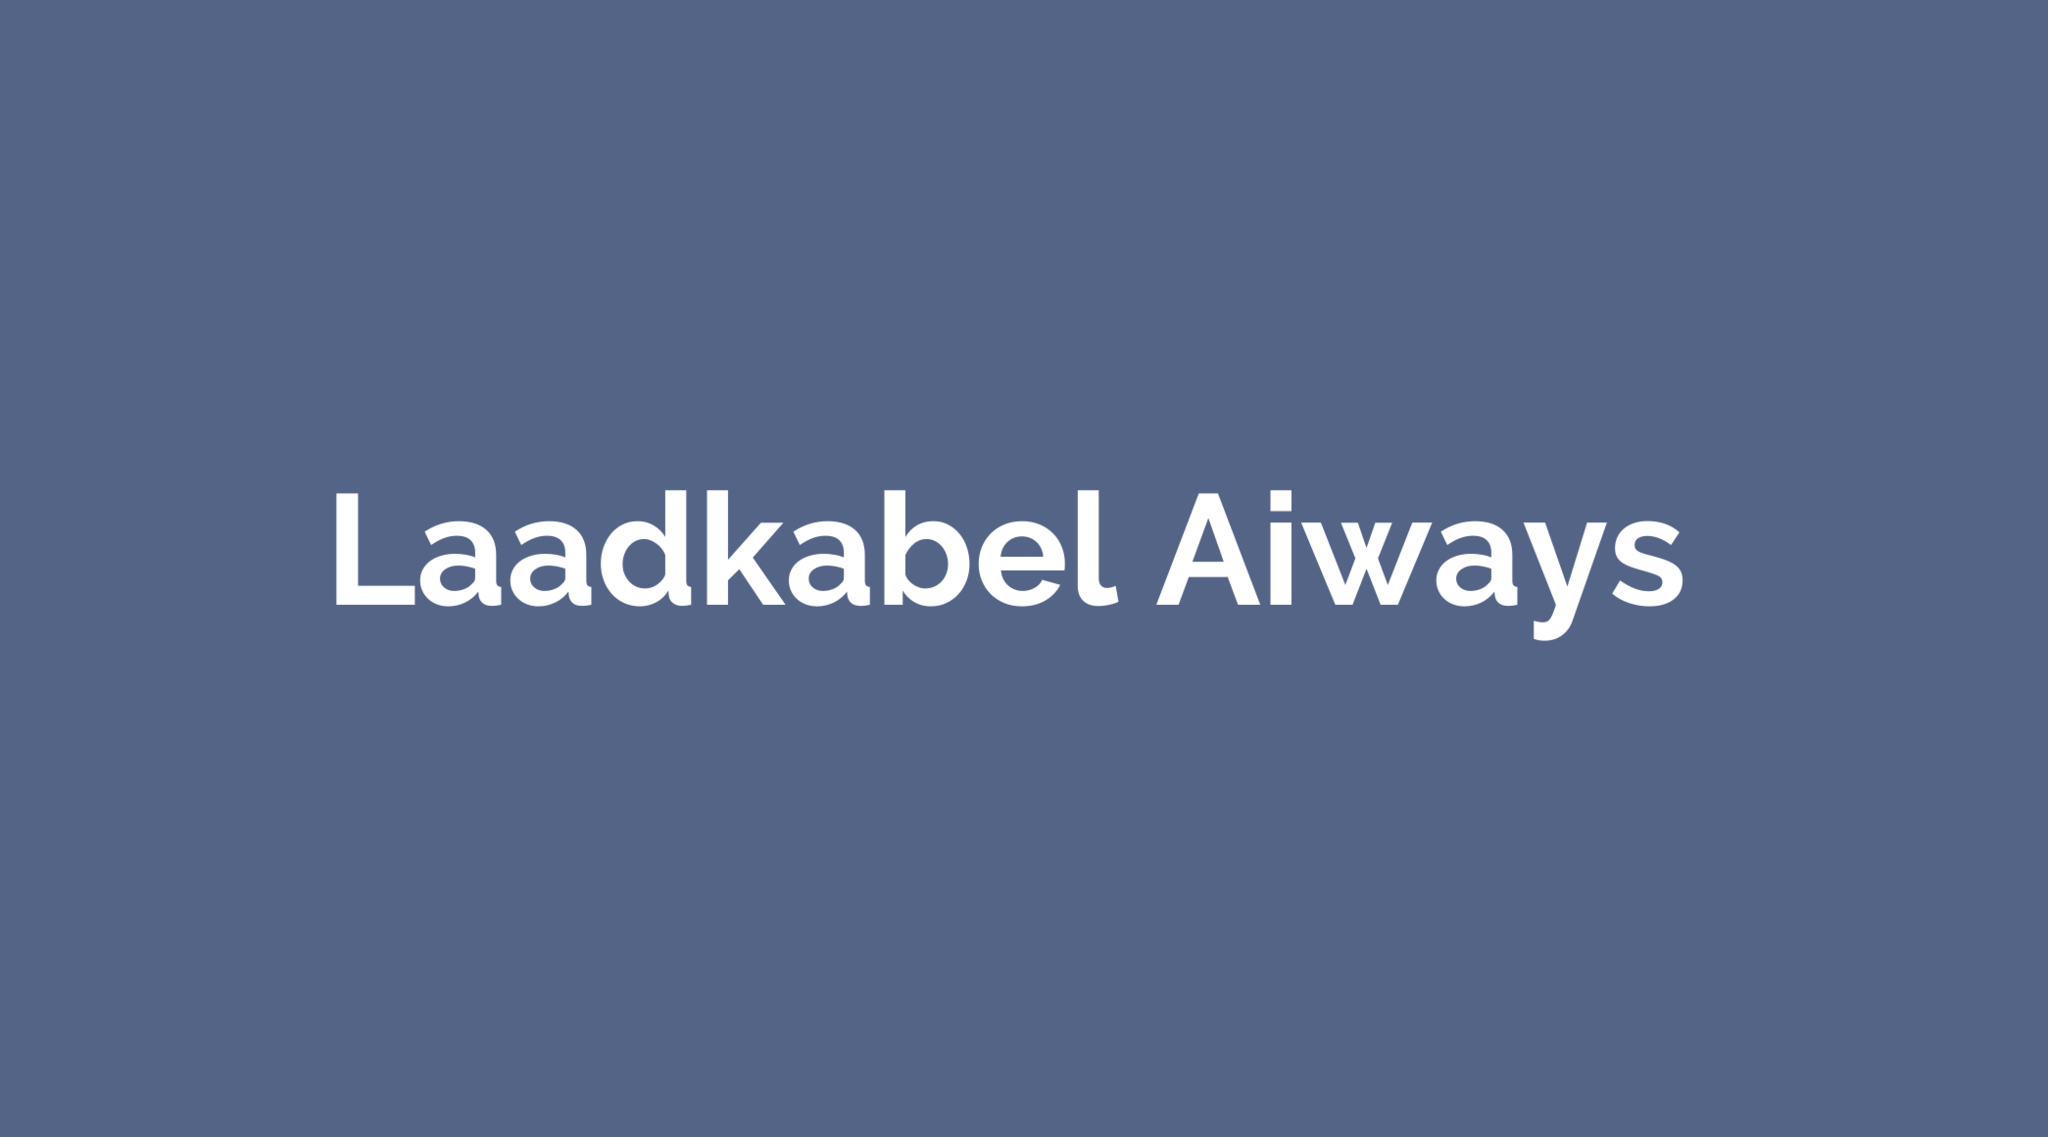 Laadkabel Aiways